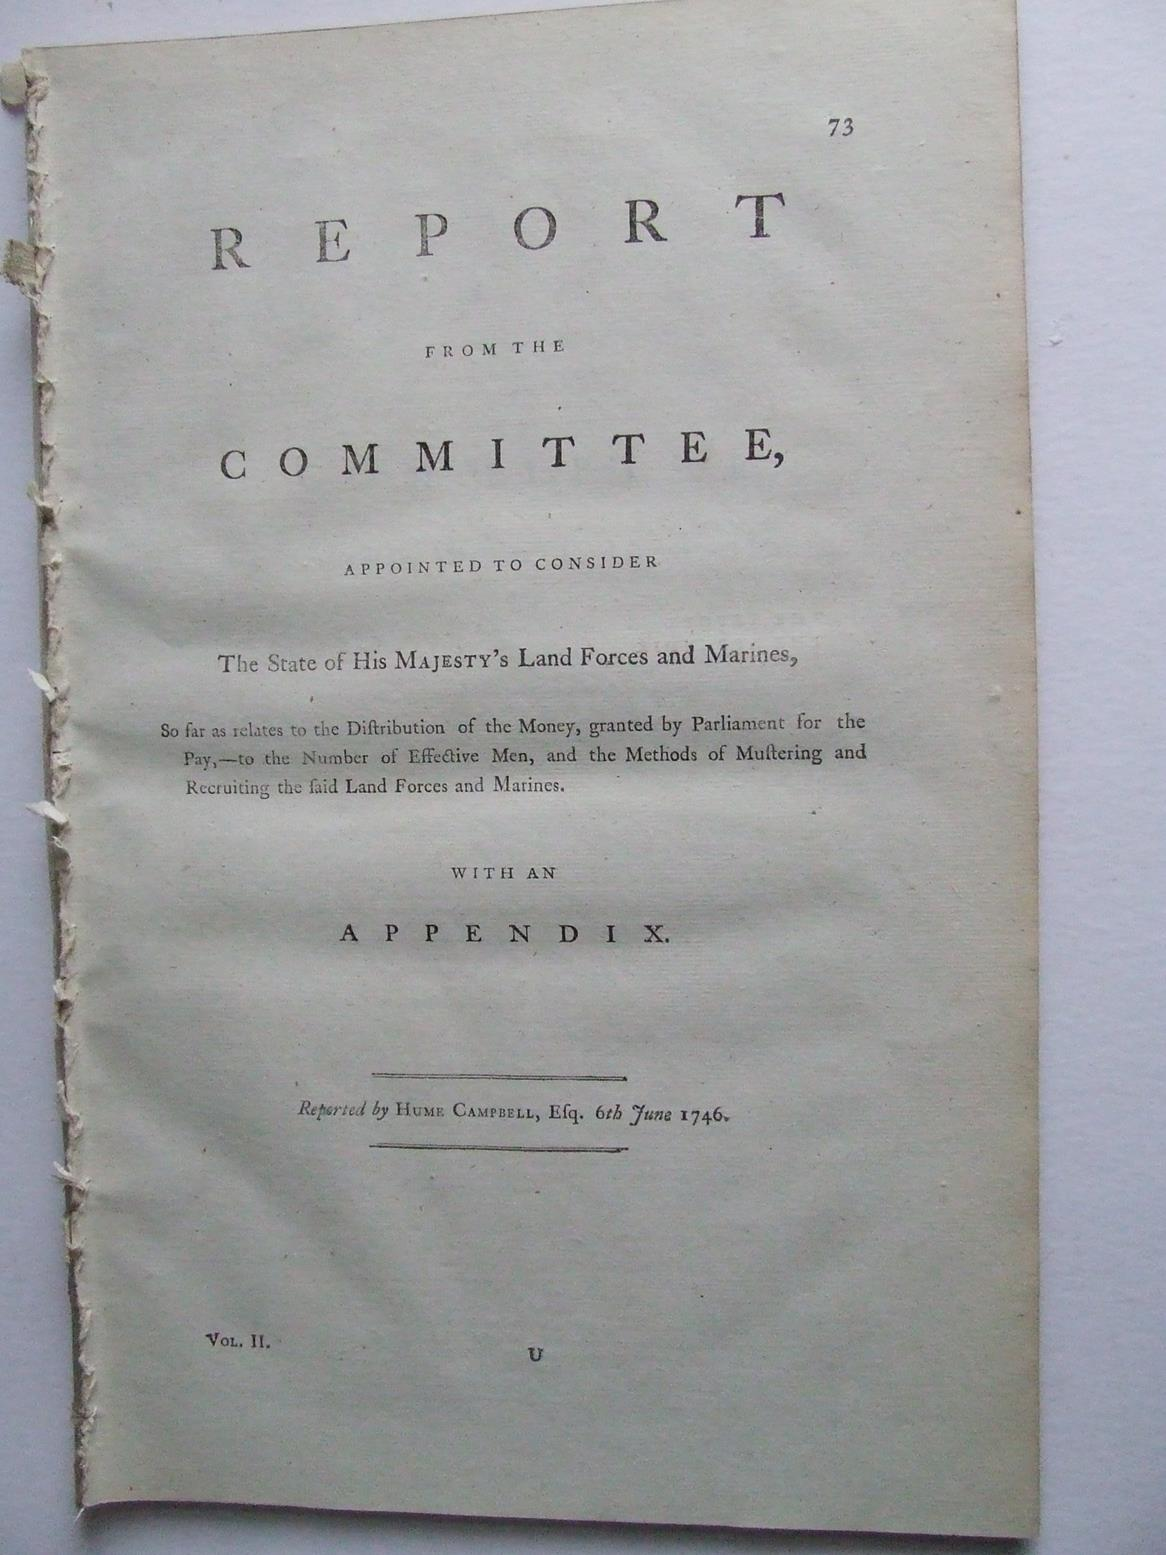 Report from the Committee, appointed to consider the state of His Majesty's Land Forces and Marines